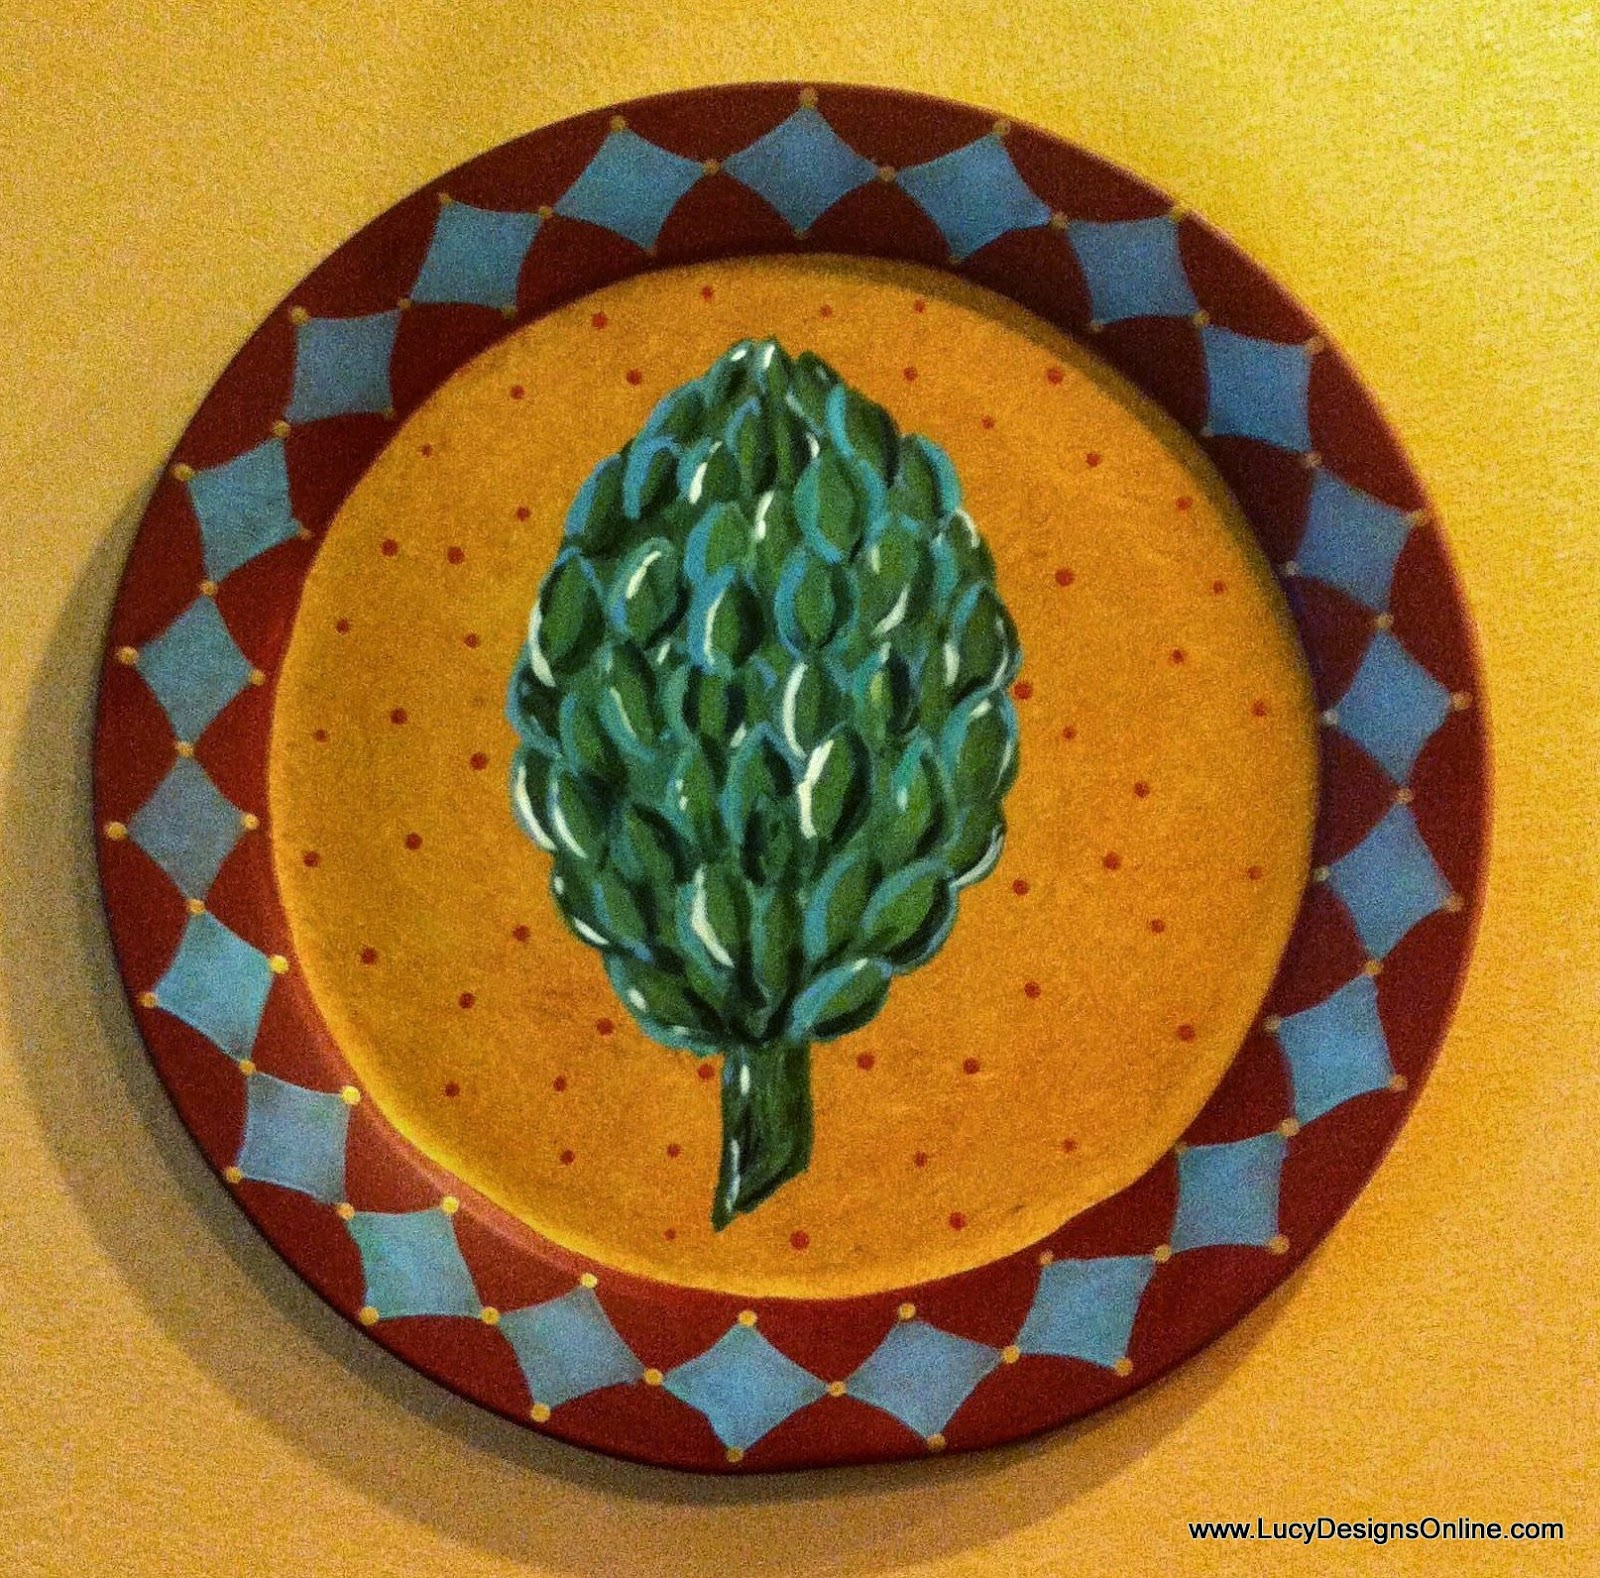 hand painted artichoke metal charger, recycled thrift store find